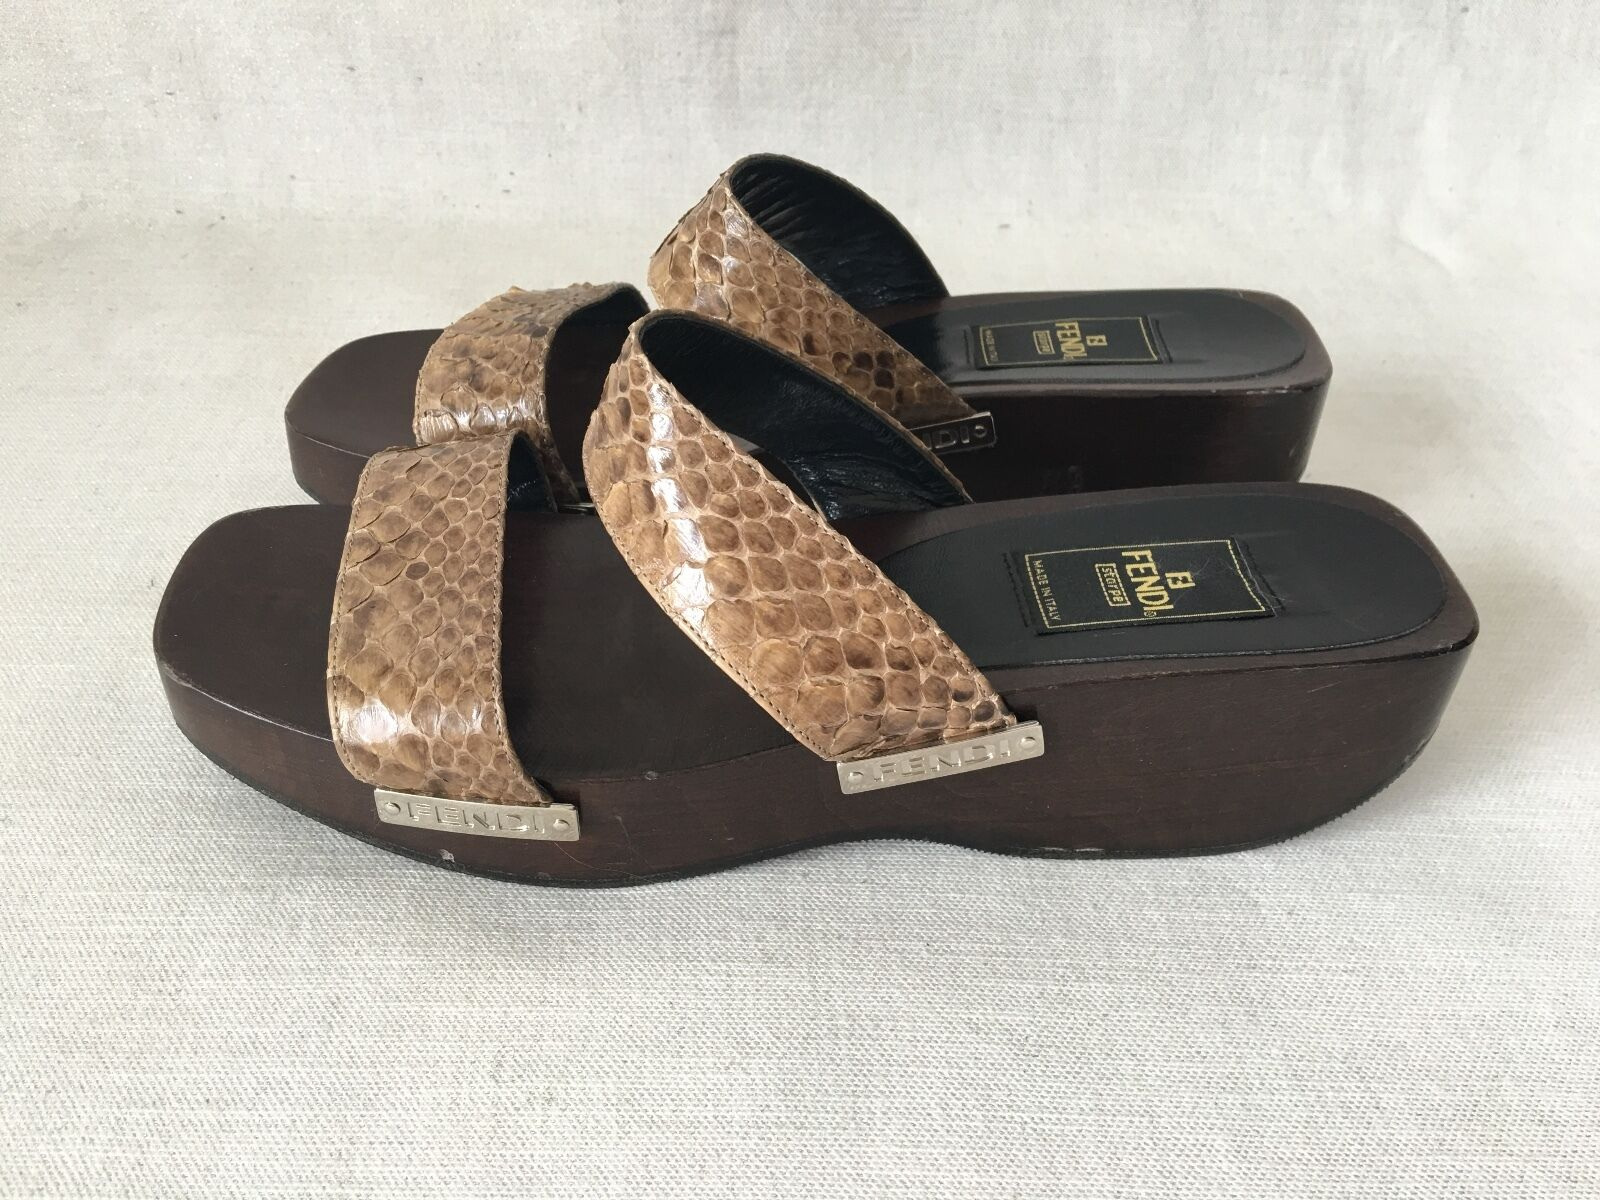 Fendi Brown, Tan Patent Leather Snakeskin wooden Clogs, Wedge Sandals. 38,1/2